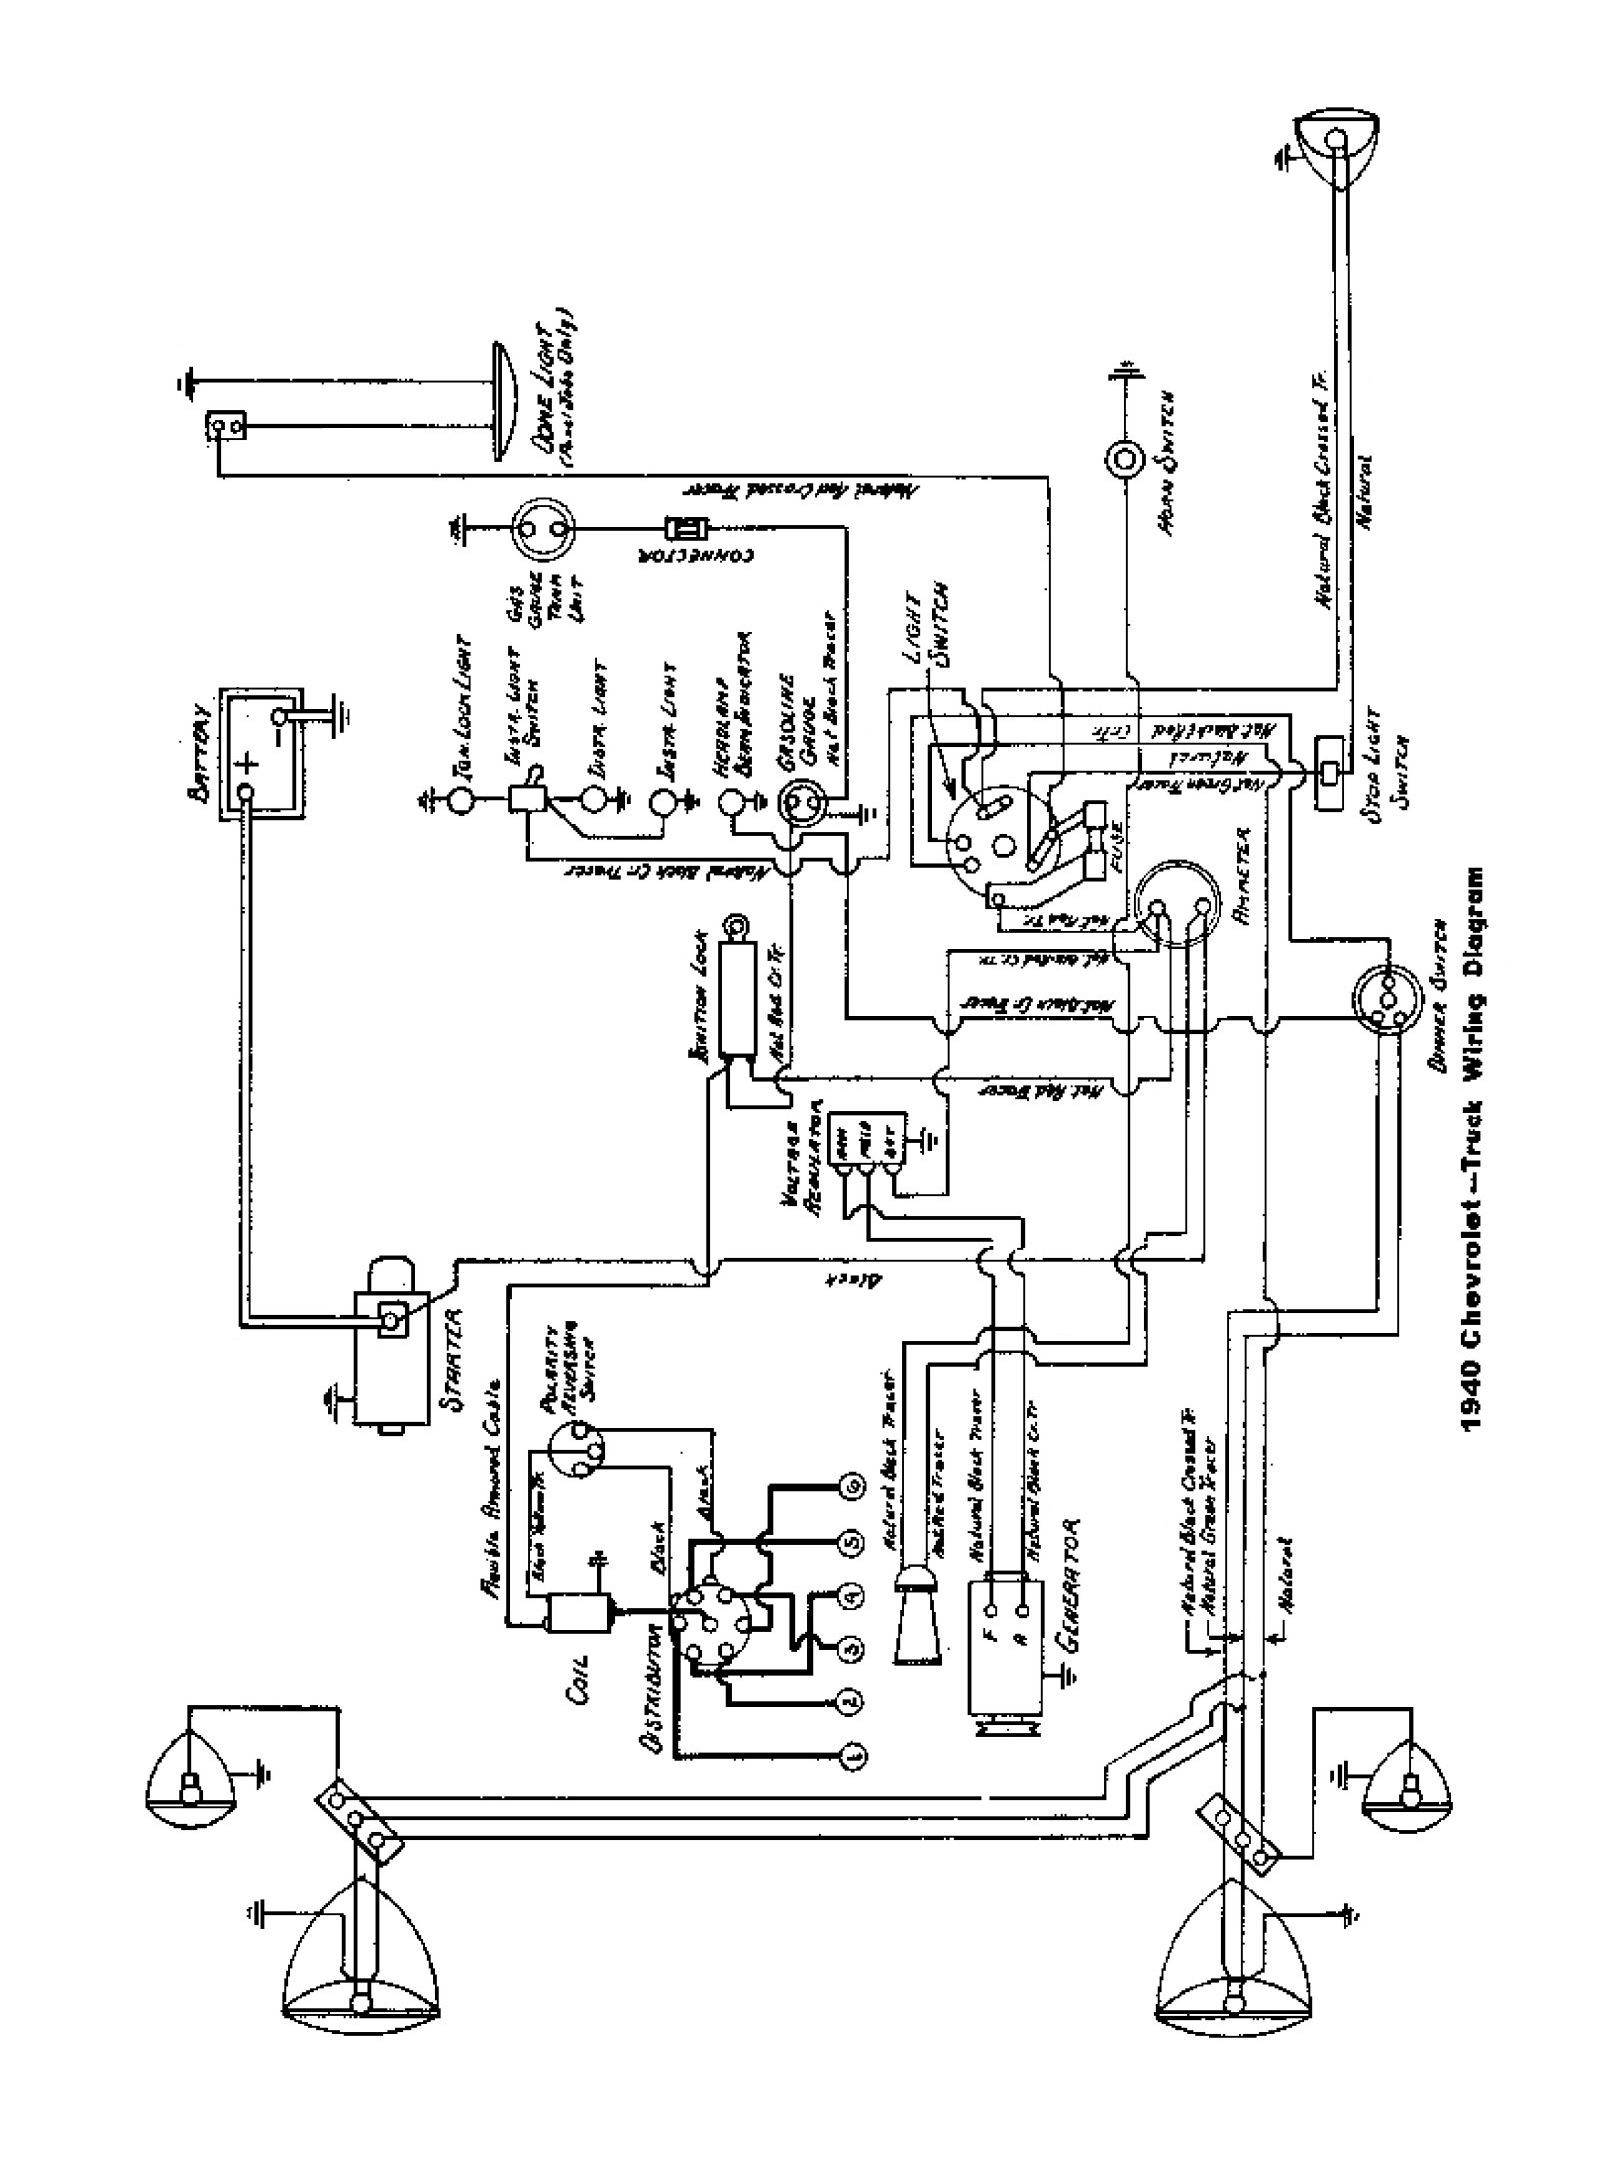 Full Wiring Diagram 1949 - Wiring Diagrams Pause on